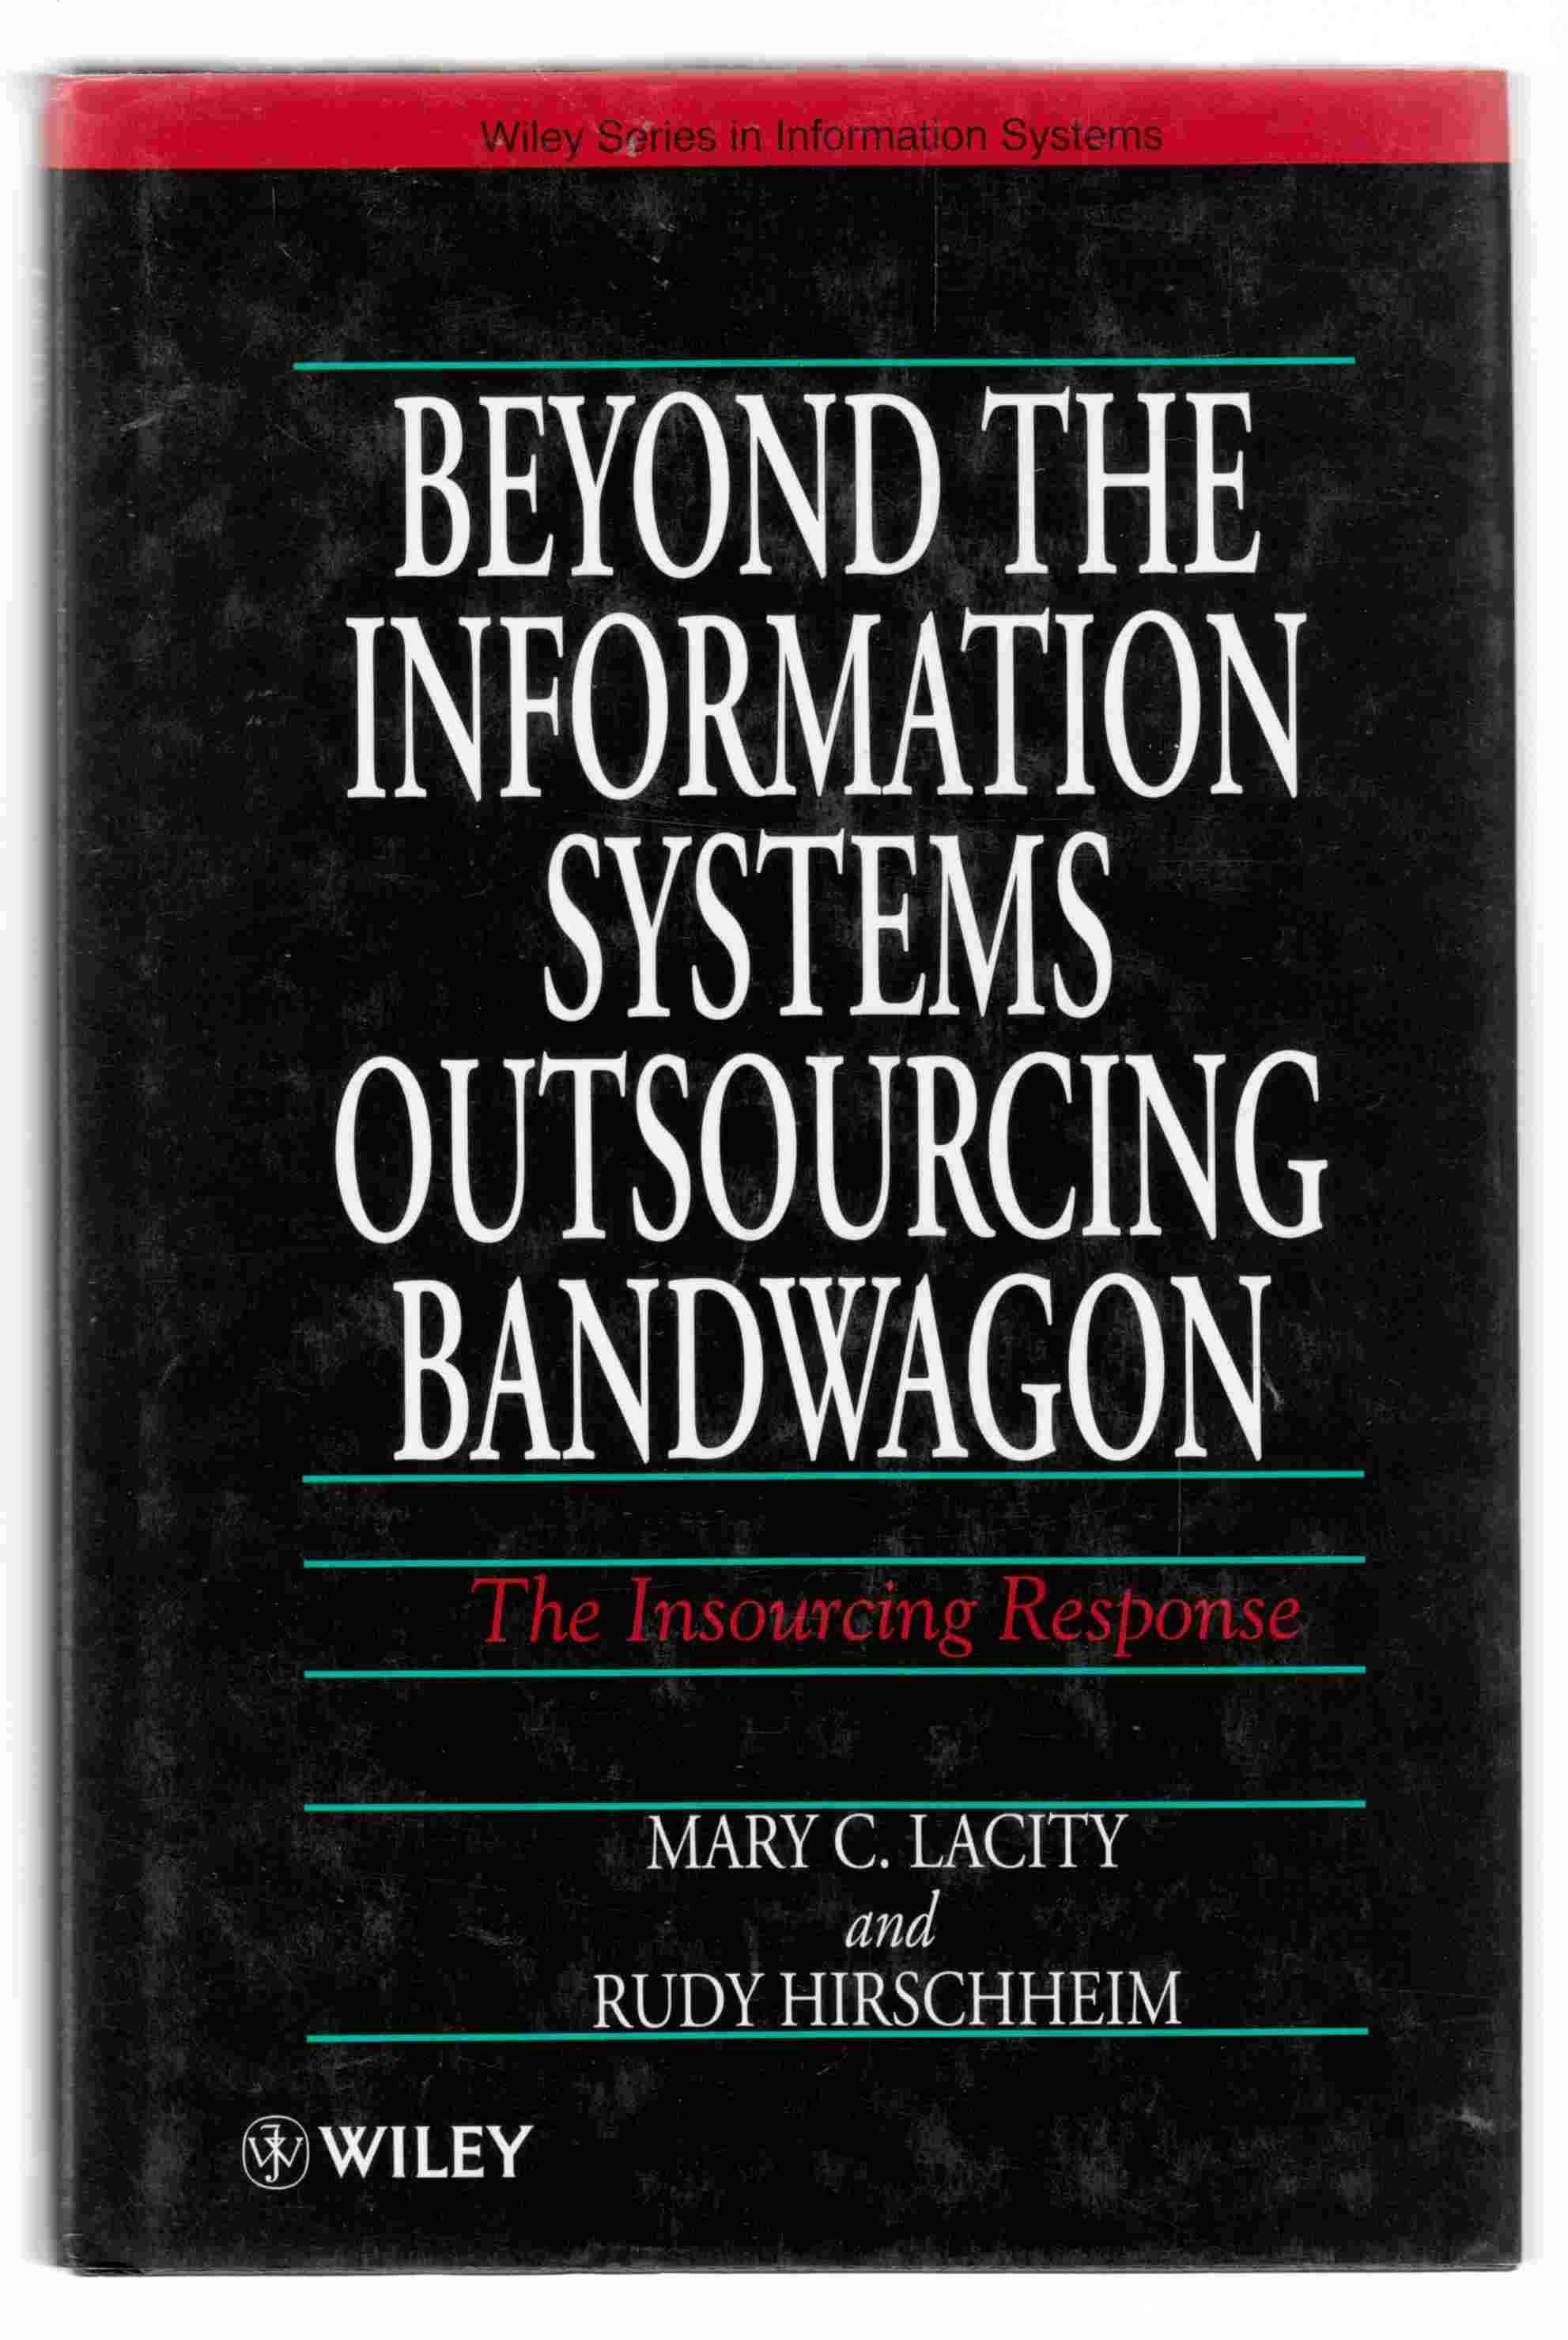 Image for Beyond the Information Systems Outsourcing Bandwagon The Insourcing Response